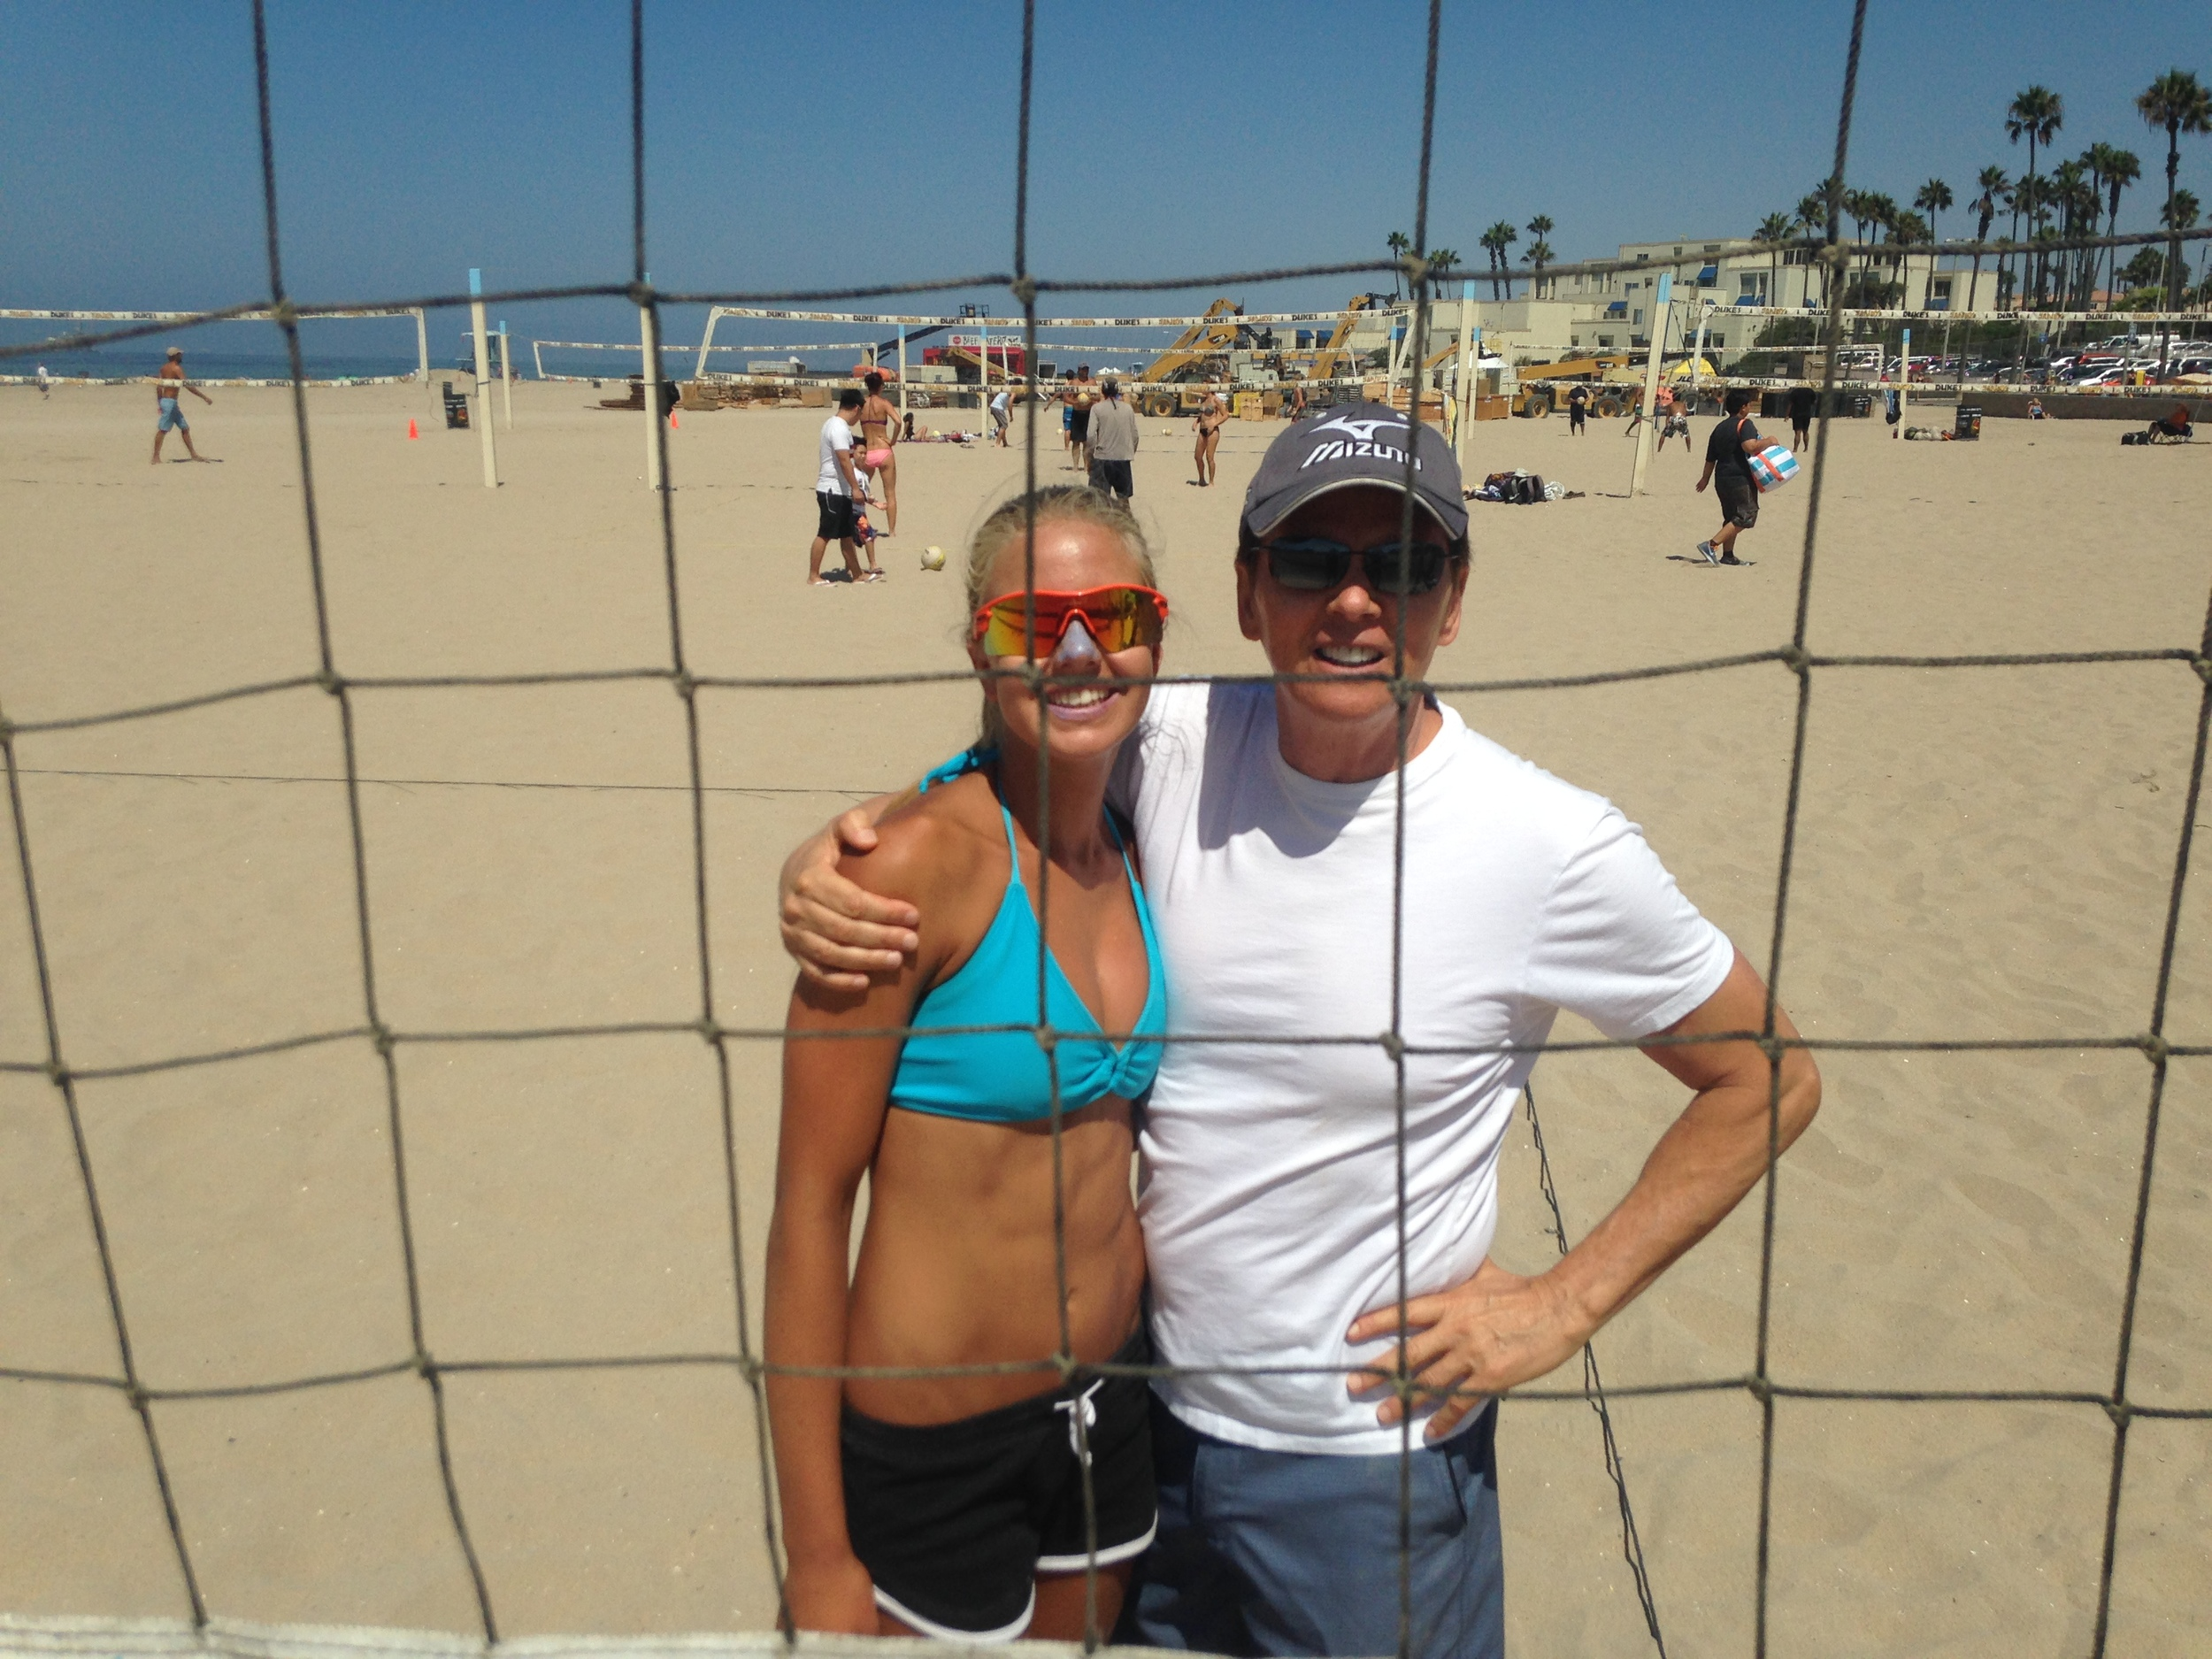 Samantha Thomas has been offered a spot  by coach Brian Gimmillaro (right) on the CSULB women's beach volleyball team for 2015. Congrats Sammee and good luck.